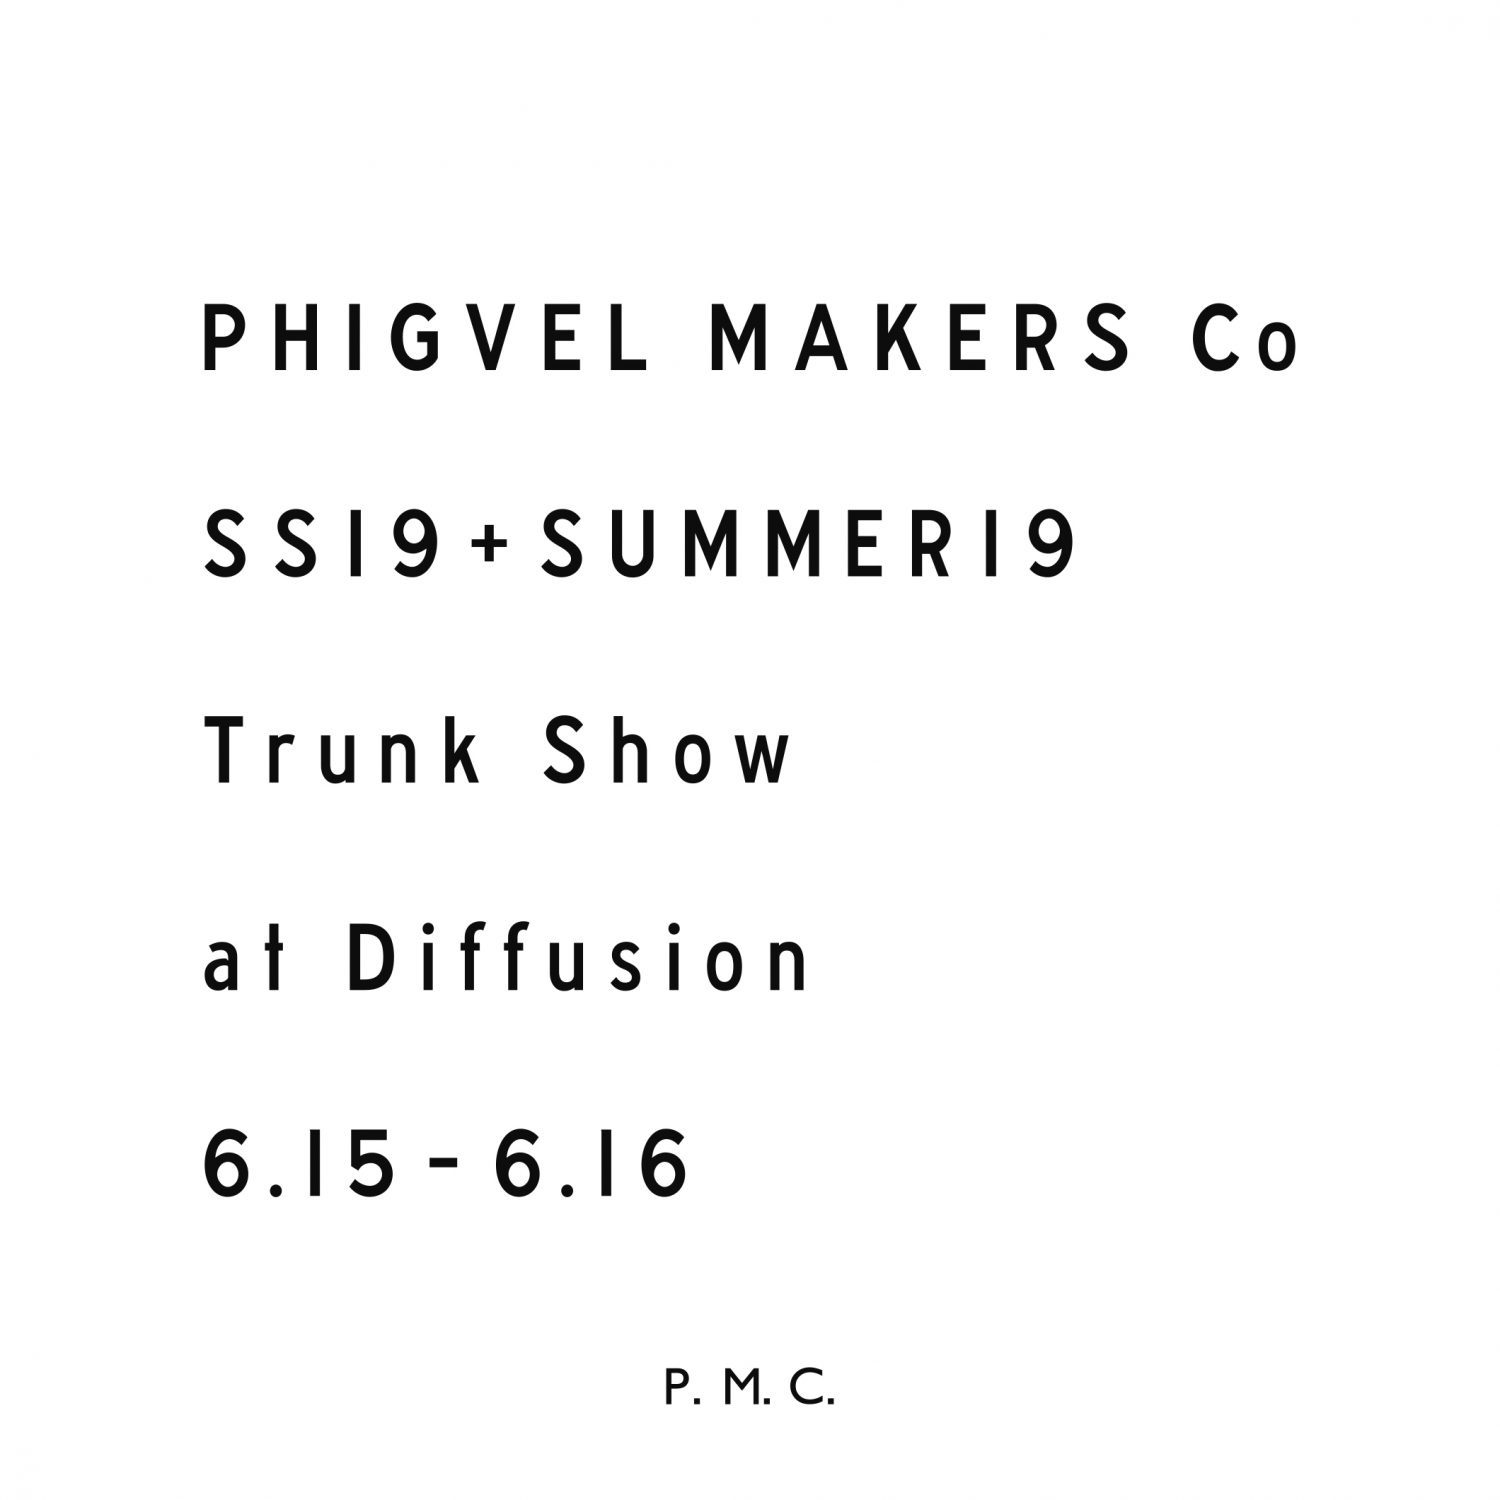 PHIGVEL Trunk Show at Diffusion